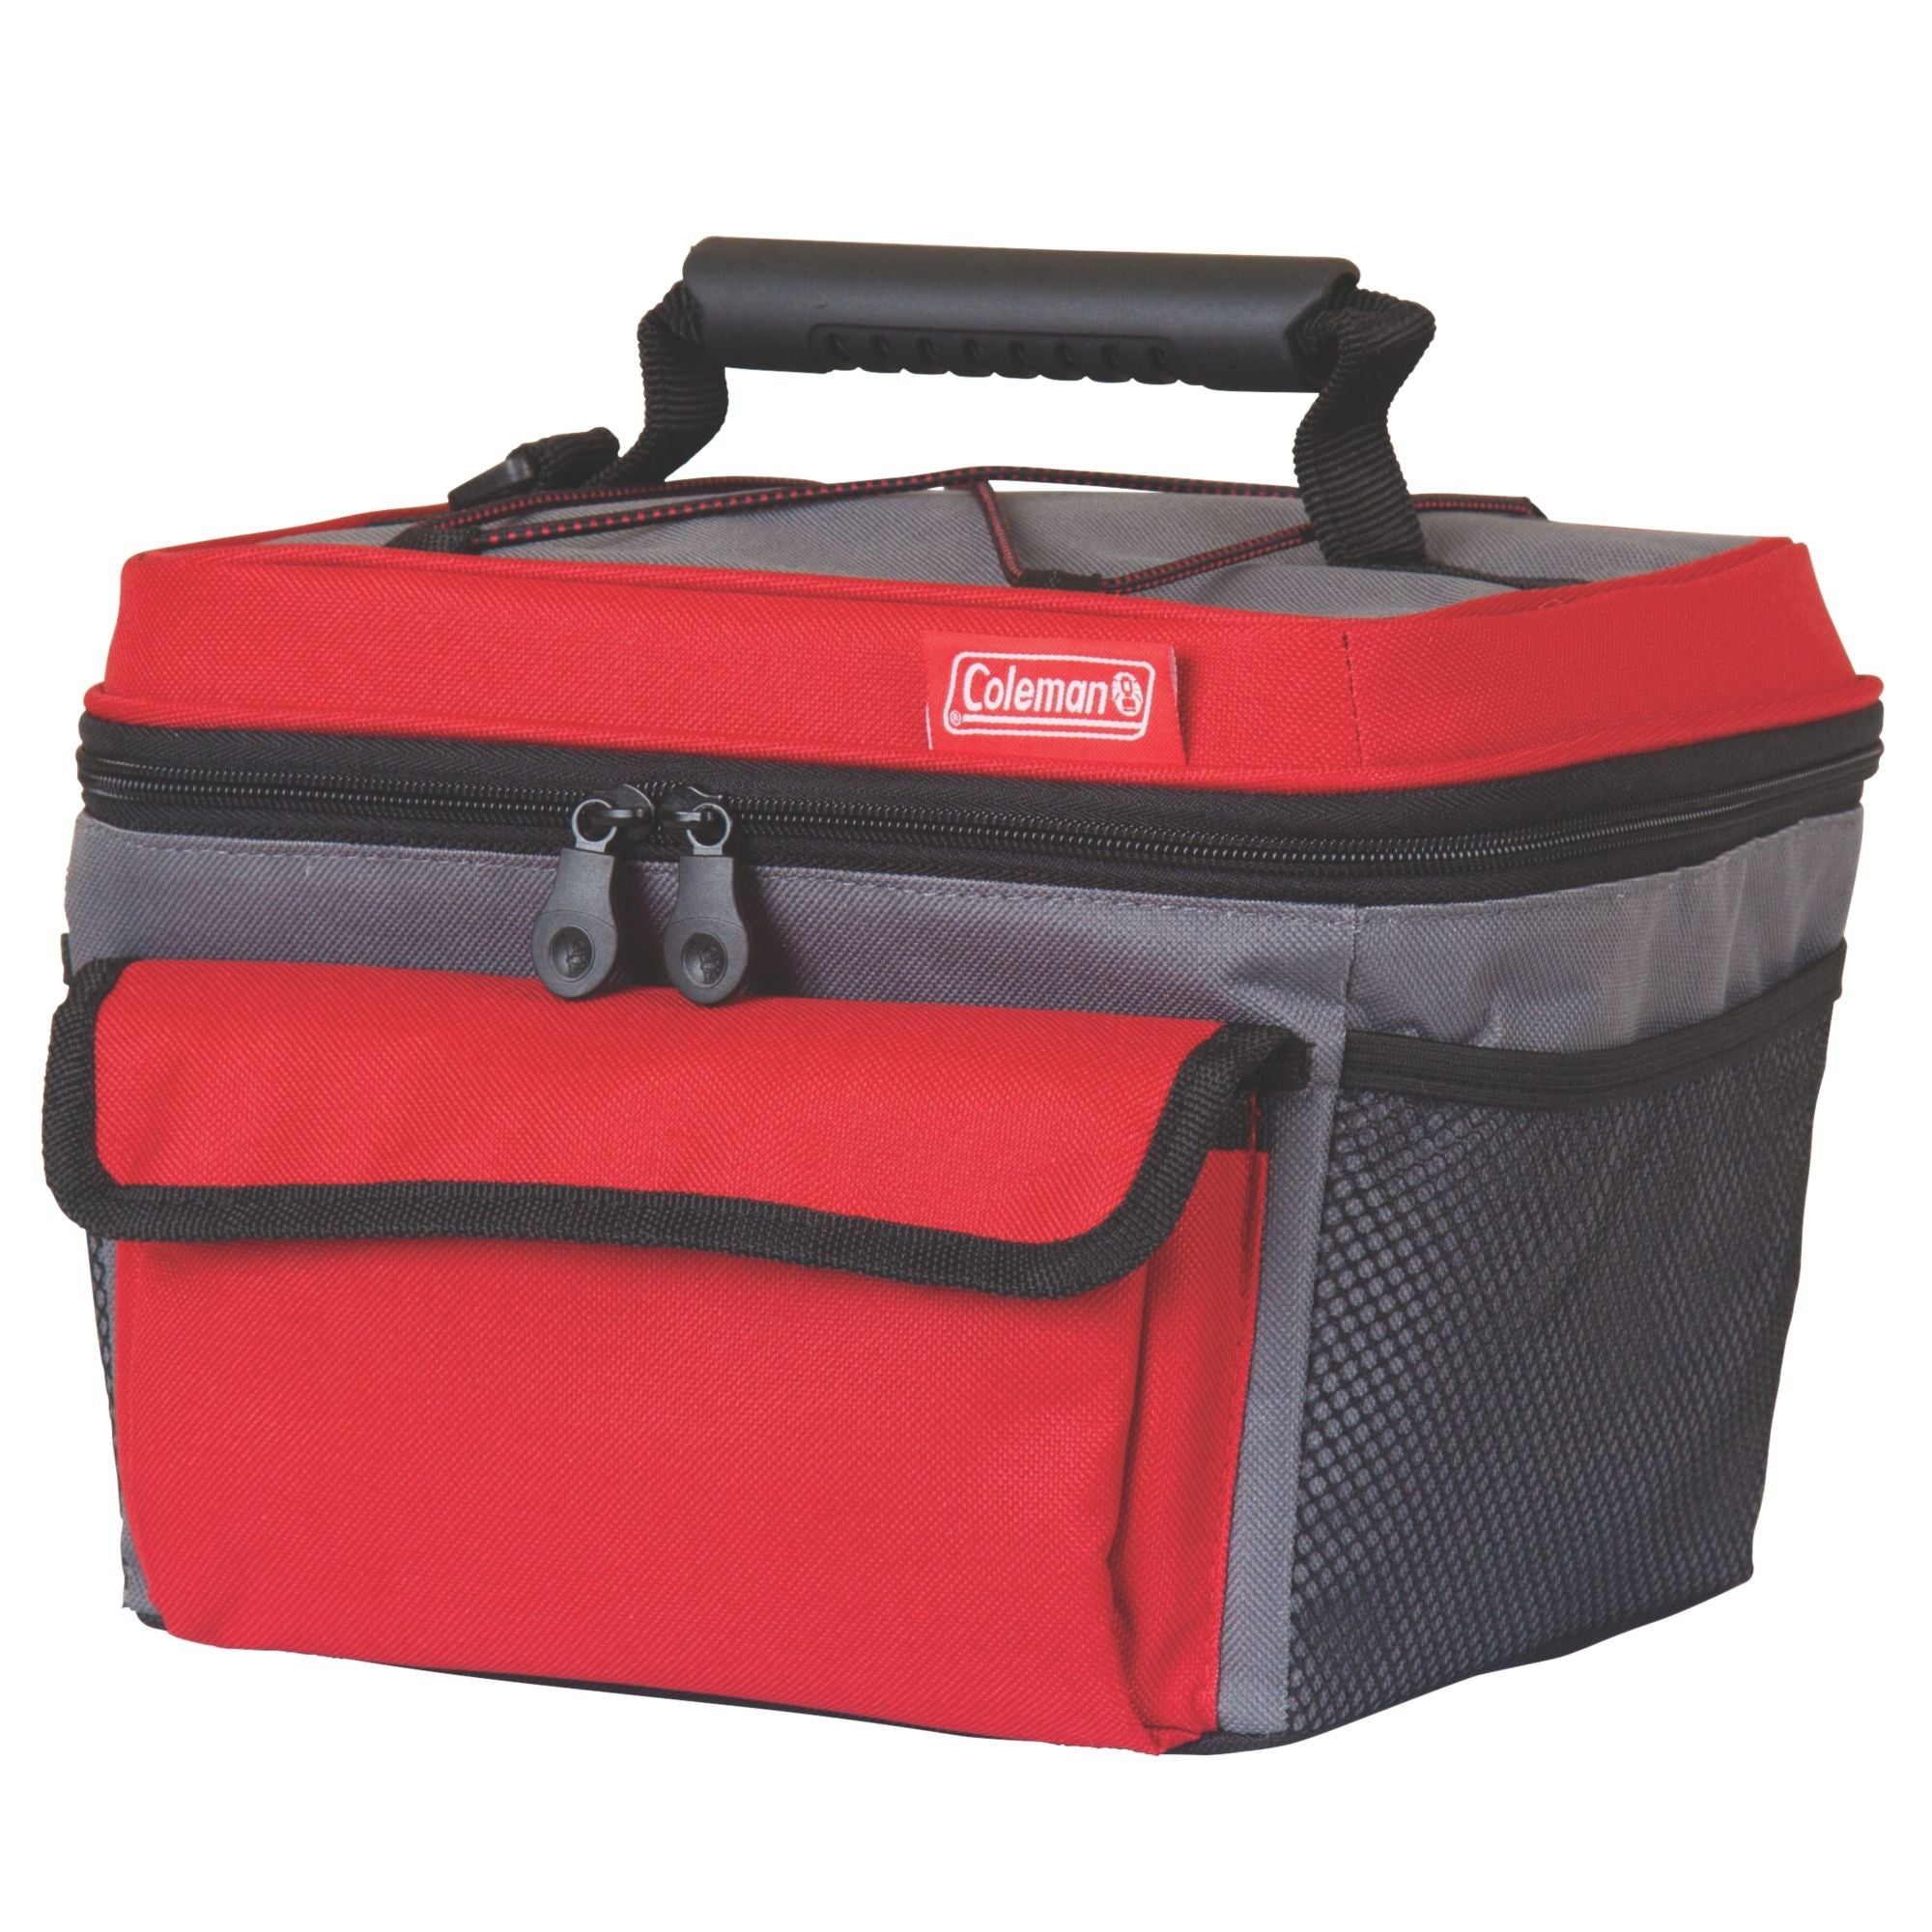 Rugged Lunch Box Cooler Taraba Home Review